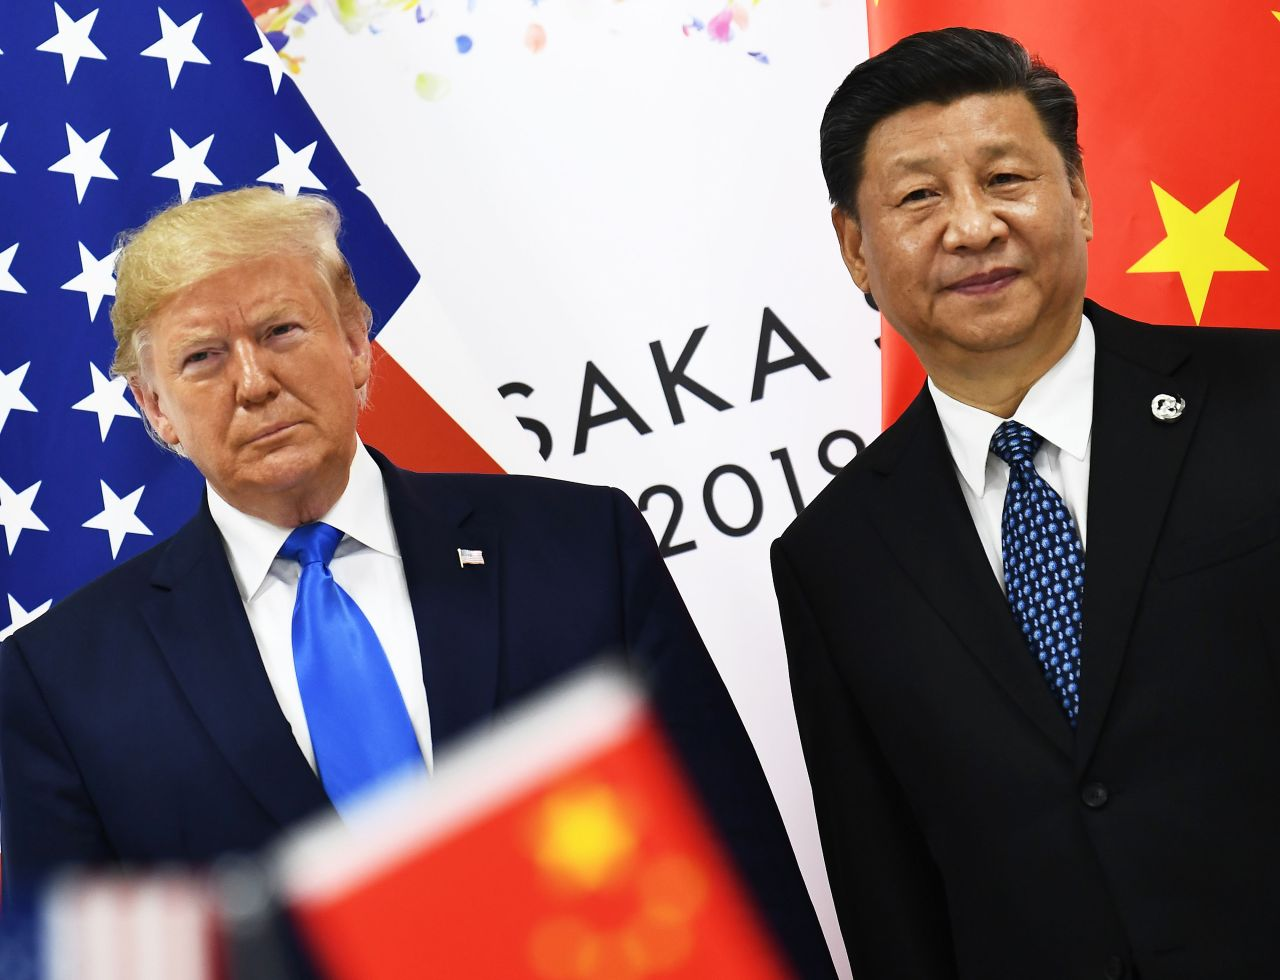 Chinese President Xi Jinping (right) and US President Donald Trump attend a bilateral meeting on the sidelines of the G-20 Summit in Osaka, Japan, on June 29. (AFP-Yonhap)